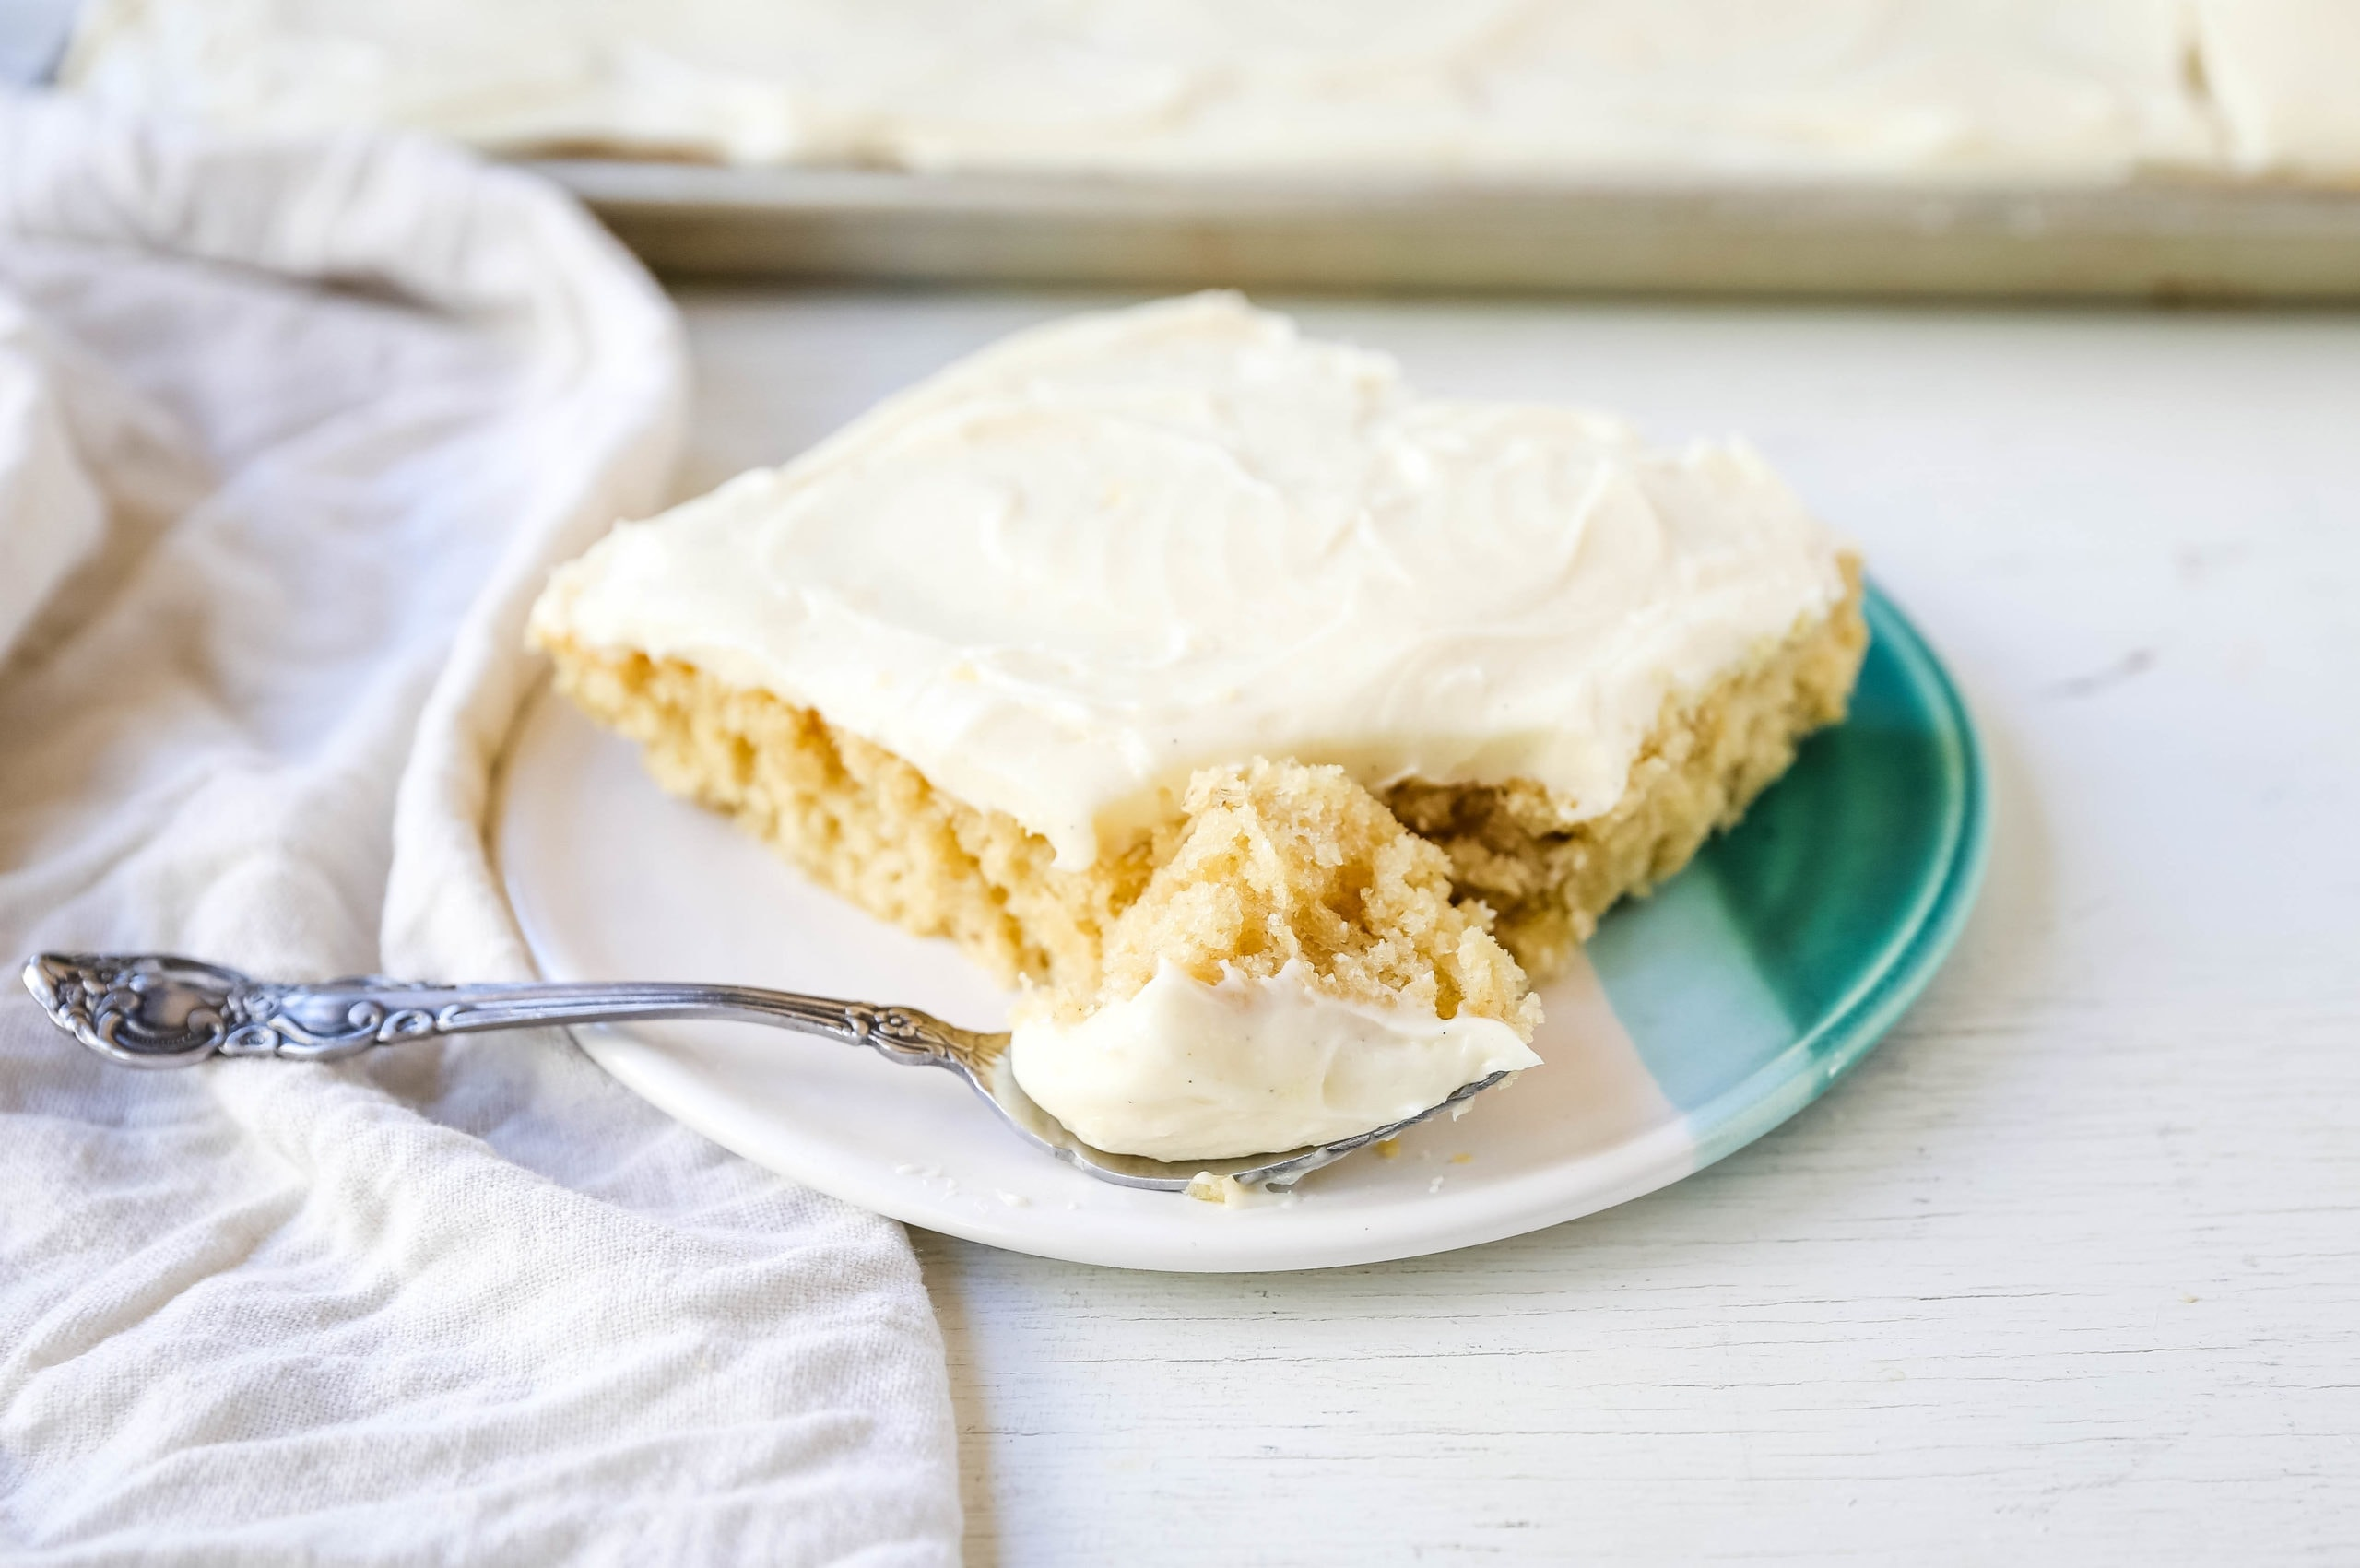 Banana Sheet Cake with Brown Butter Frosting Moist banana bars with a brown butter cream cheese buttercream. An easy frosted banana cake recipe! www.modernhoney.com #bananacake #bananabars #frostedbananacake #frostedbananabars #bananarecipes